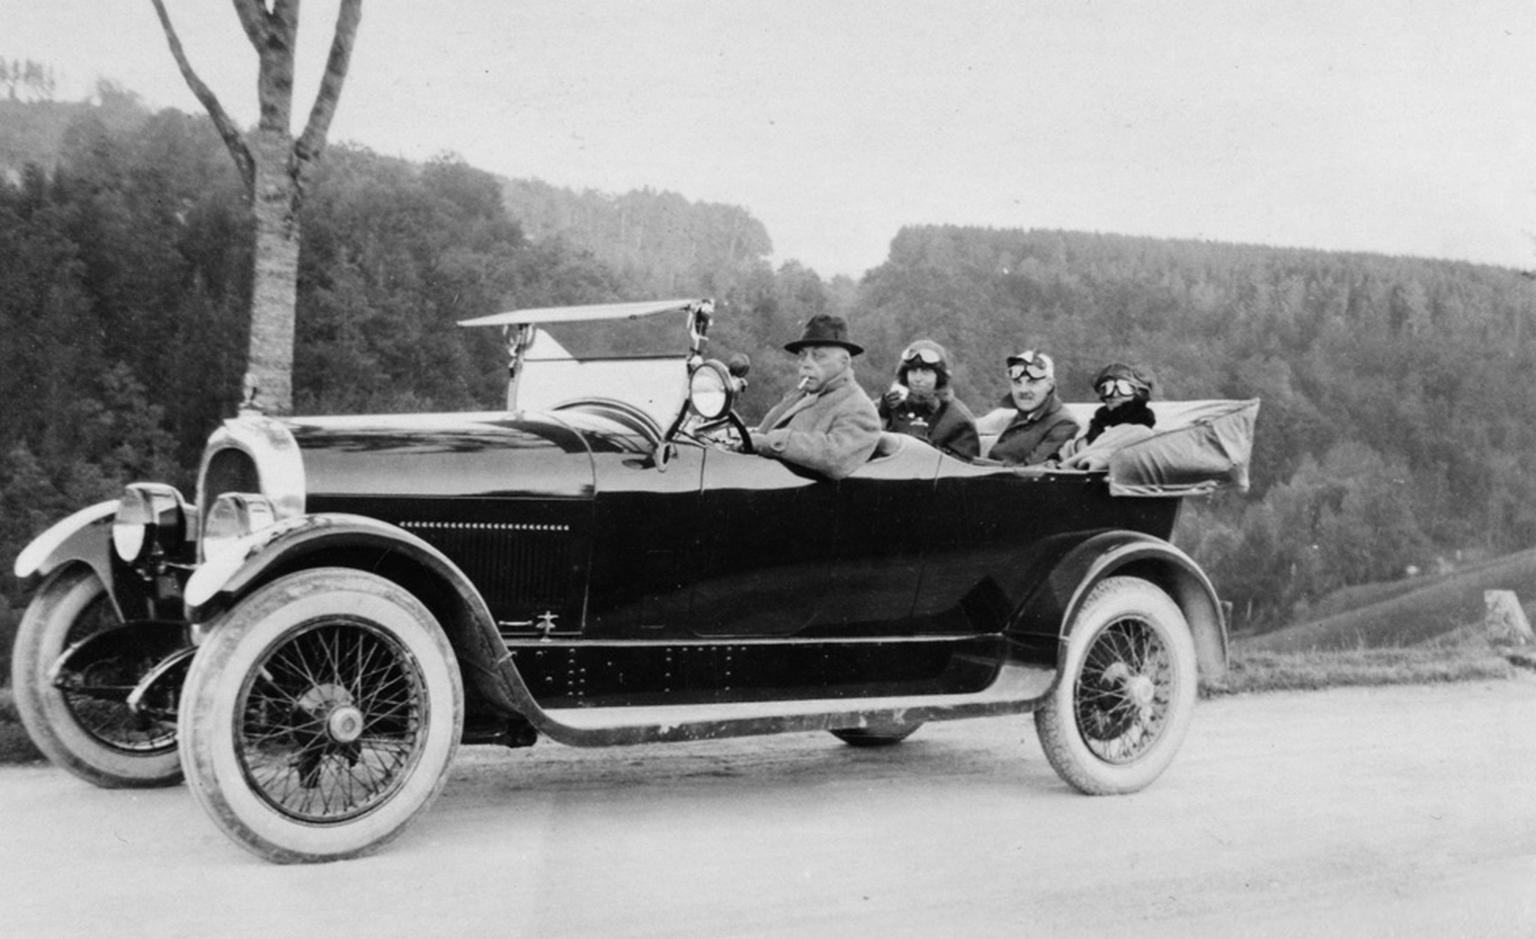 The Heuer family out and about in their automobile.